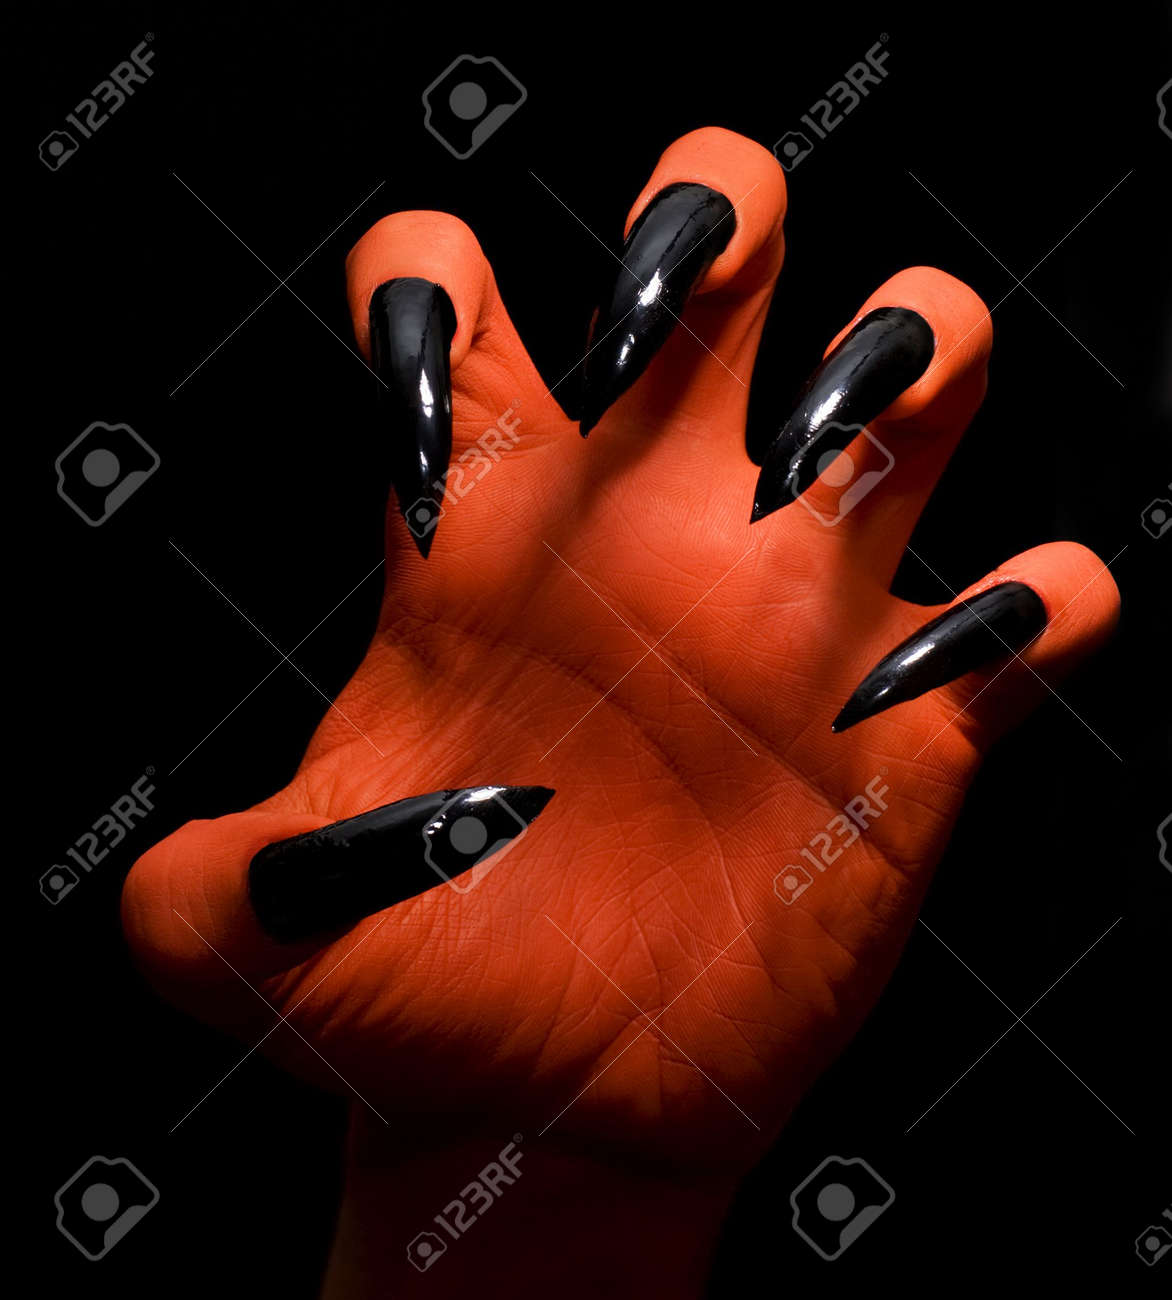 red spooky devil hand on a dark background catching you stock photo